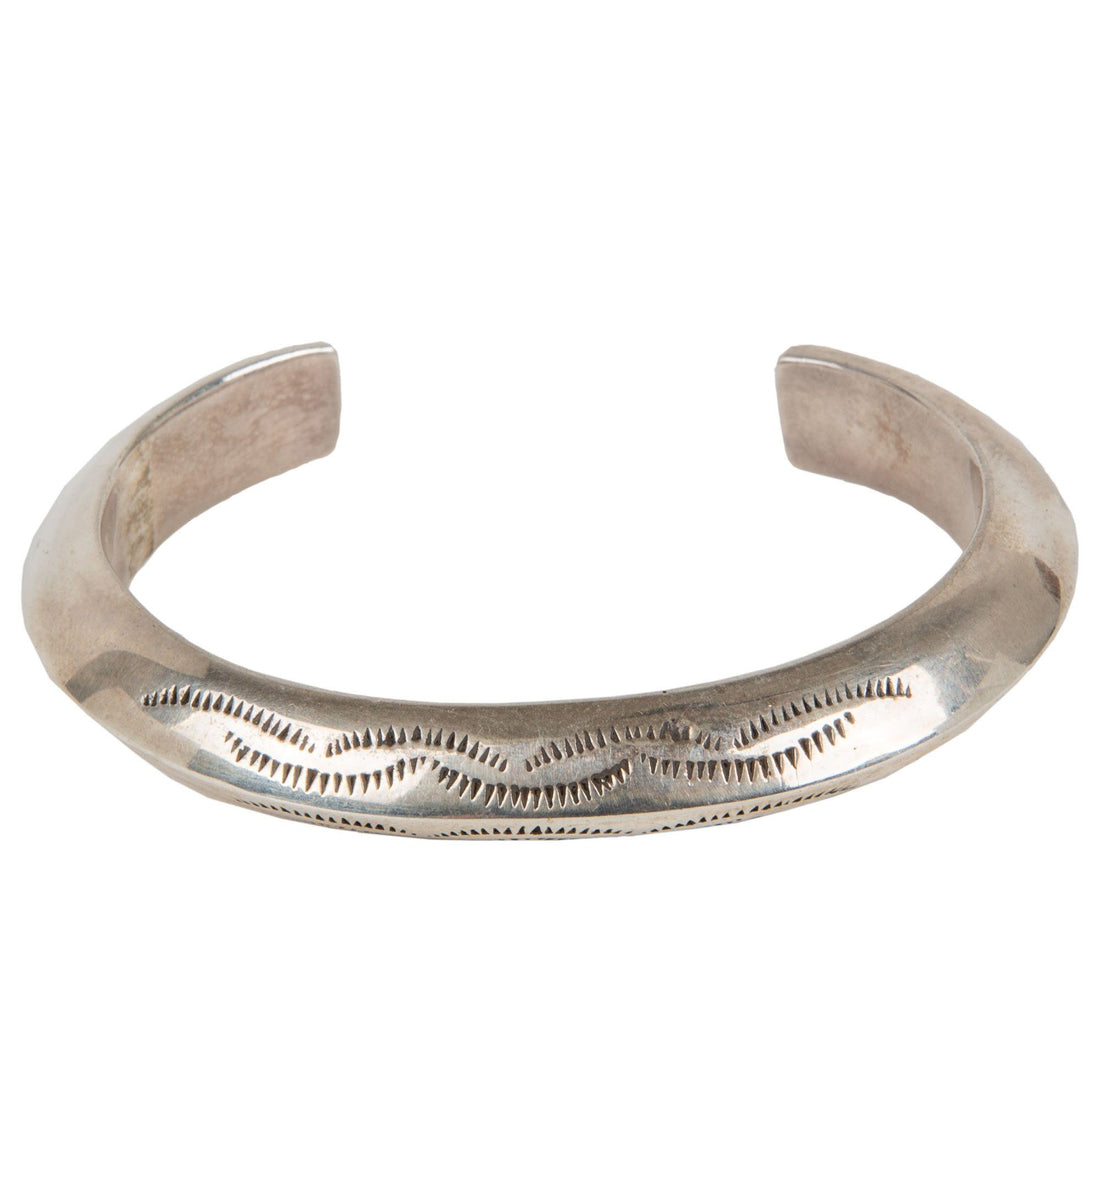 Stamped Angular Bracelet - Jewelry - Iron and Resin